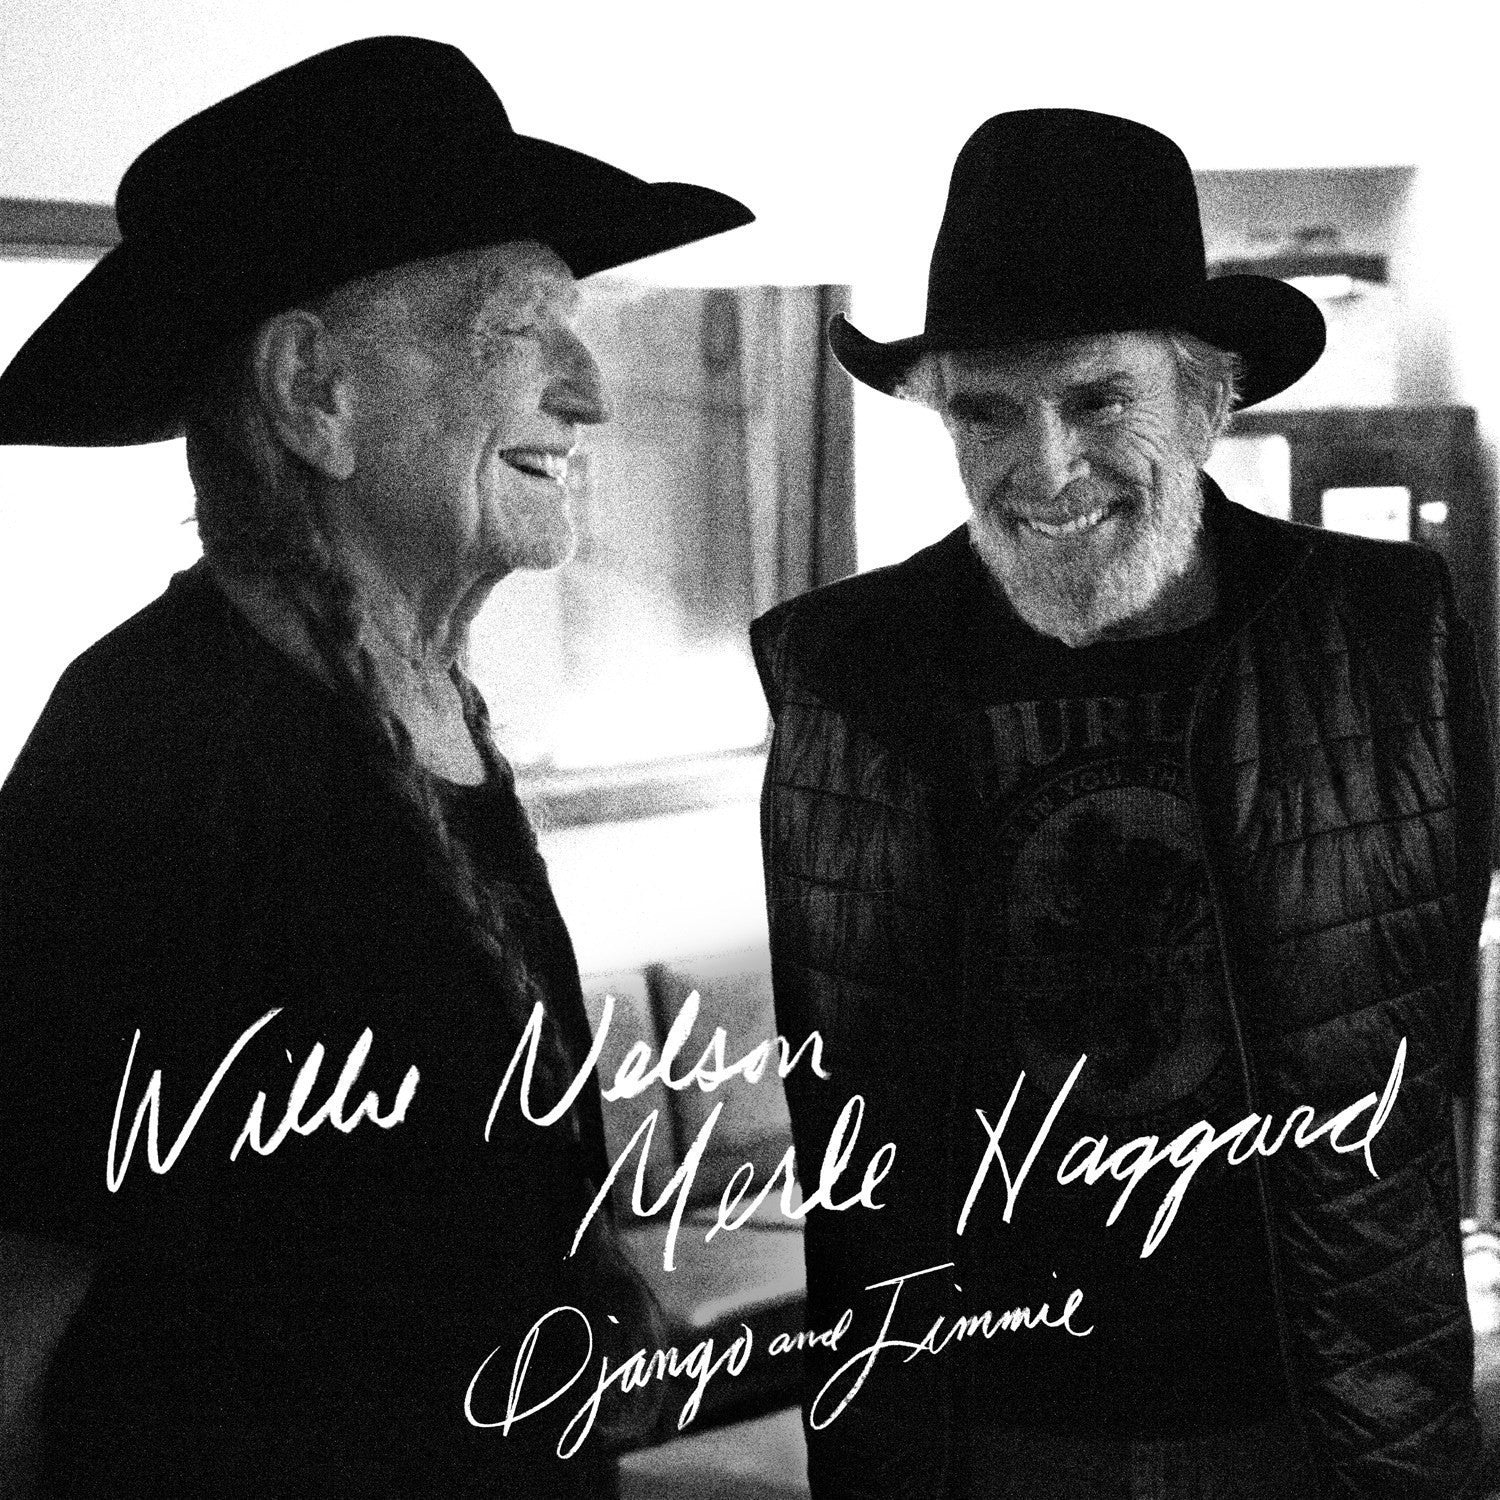 Willie Nelson & Merle Haggard - Django and Jimmie 2xLP (7/24/2015)